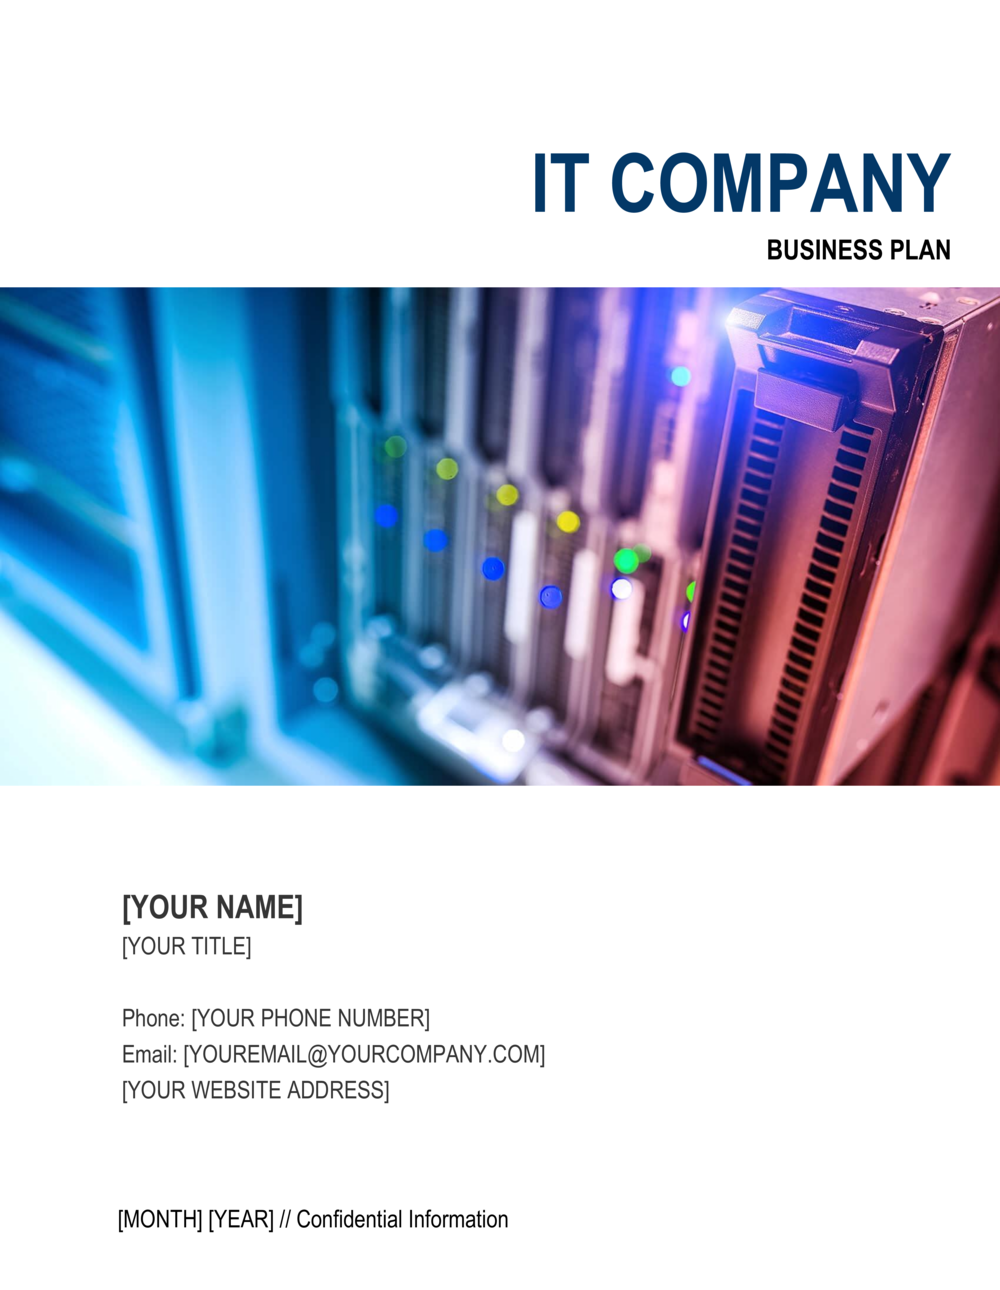 Business-in-a-Box's IT Company Business Plan Template